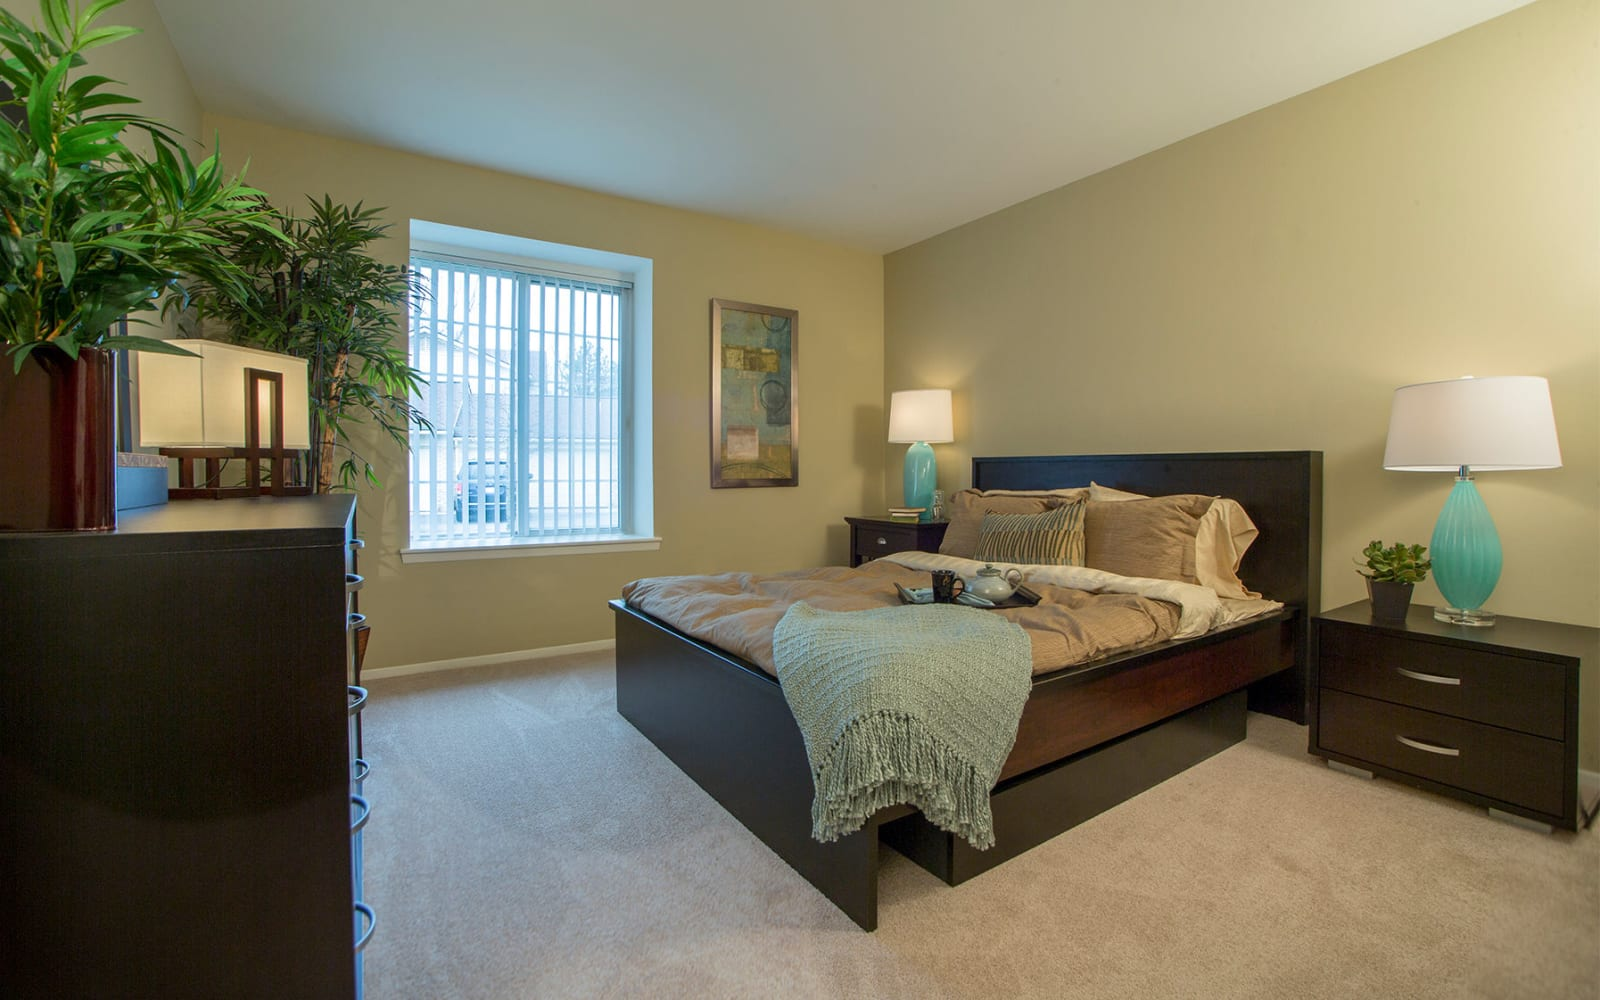 Model bedroom at Aldingbrooke in West Bloomfield, Michigan